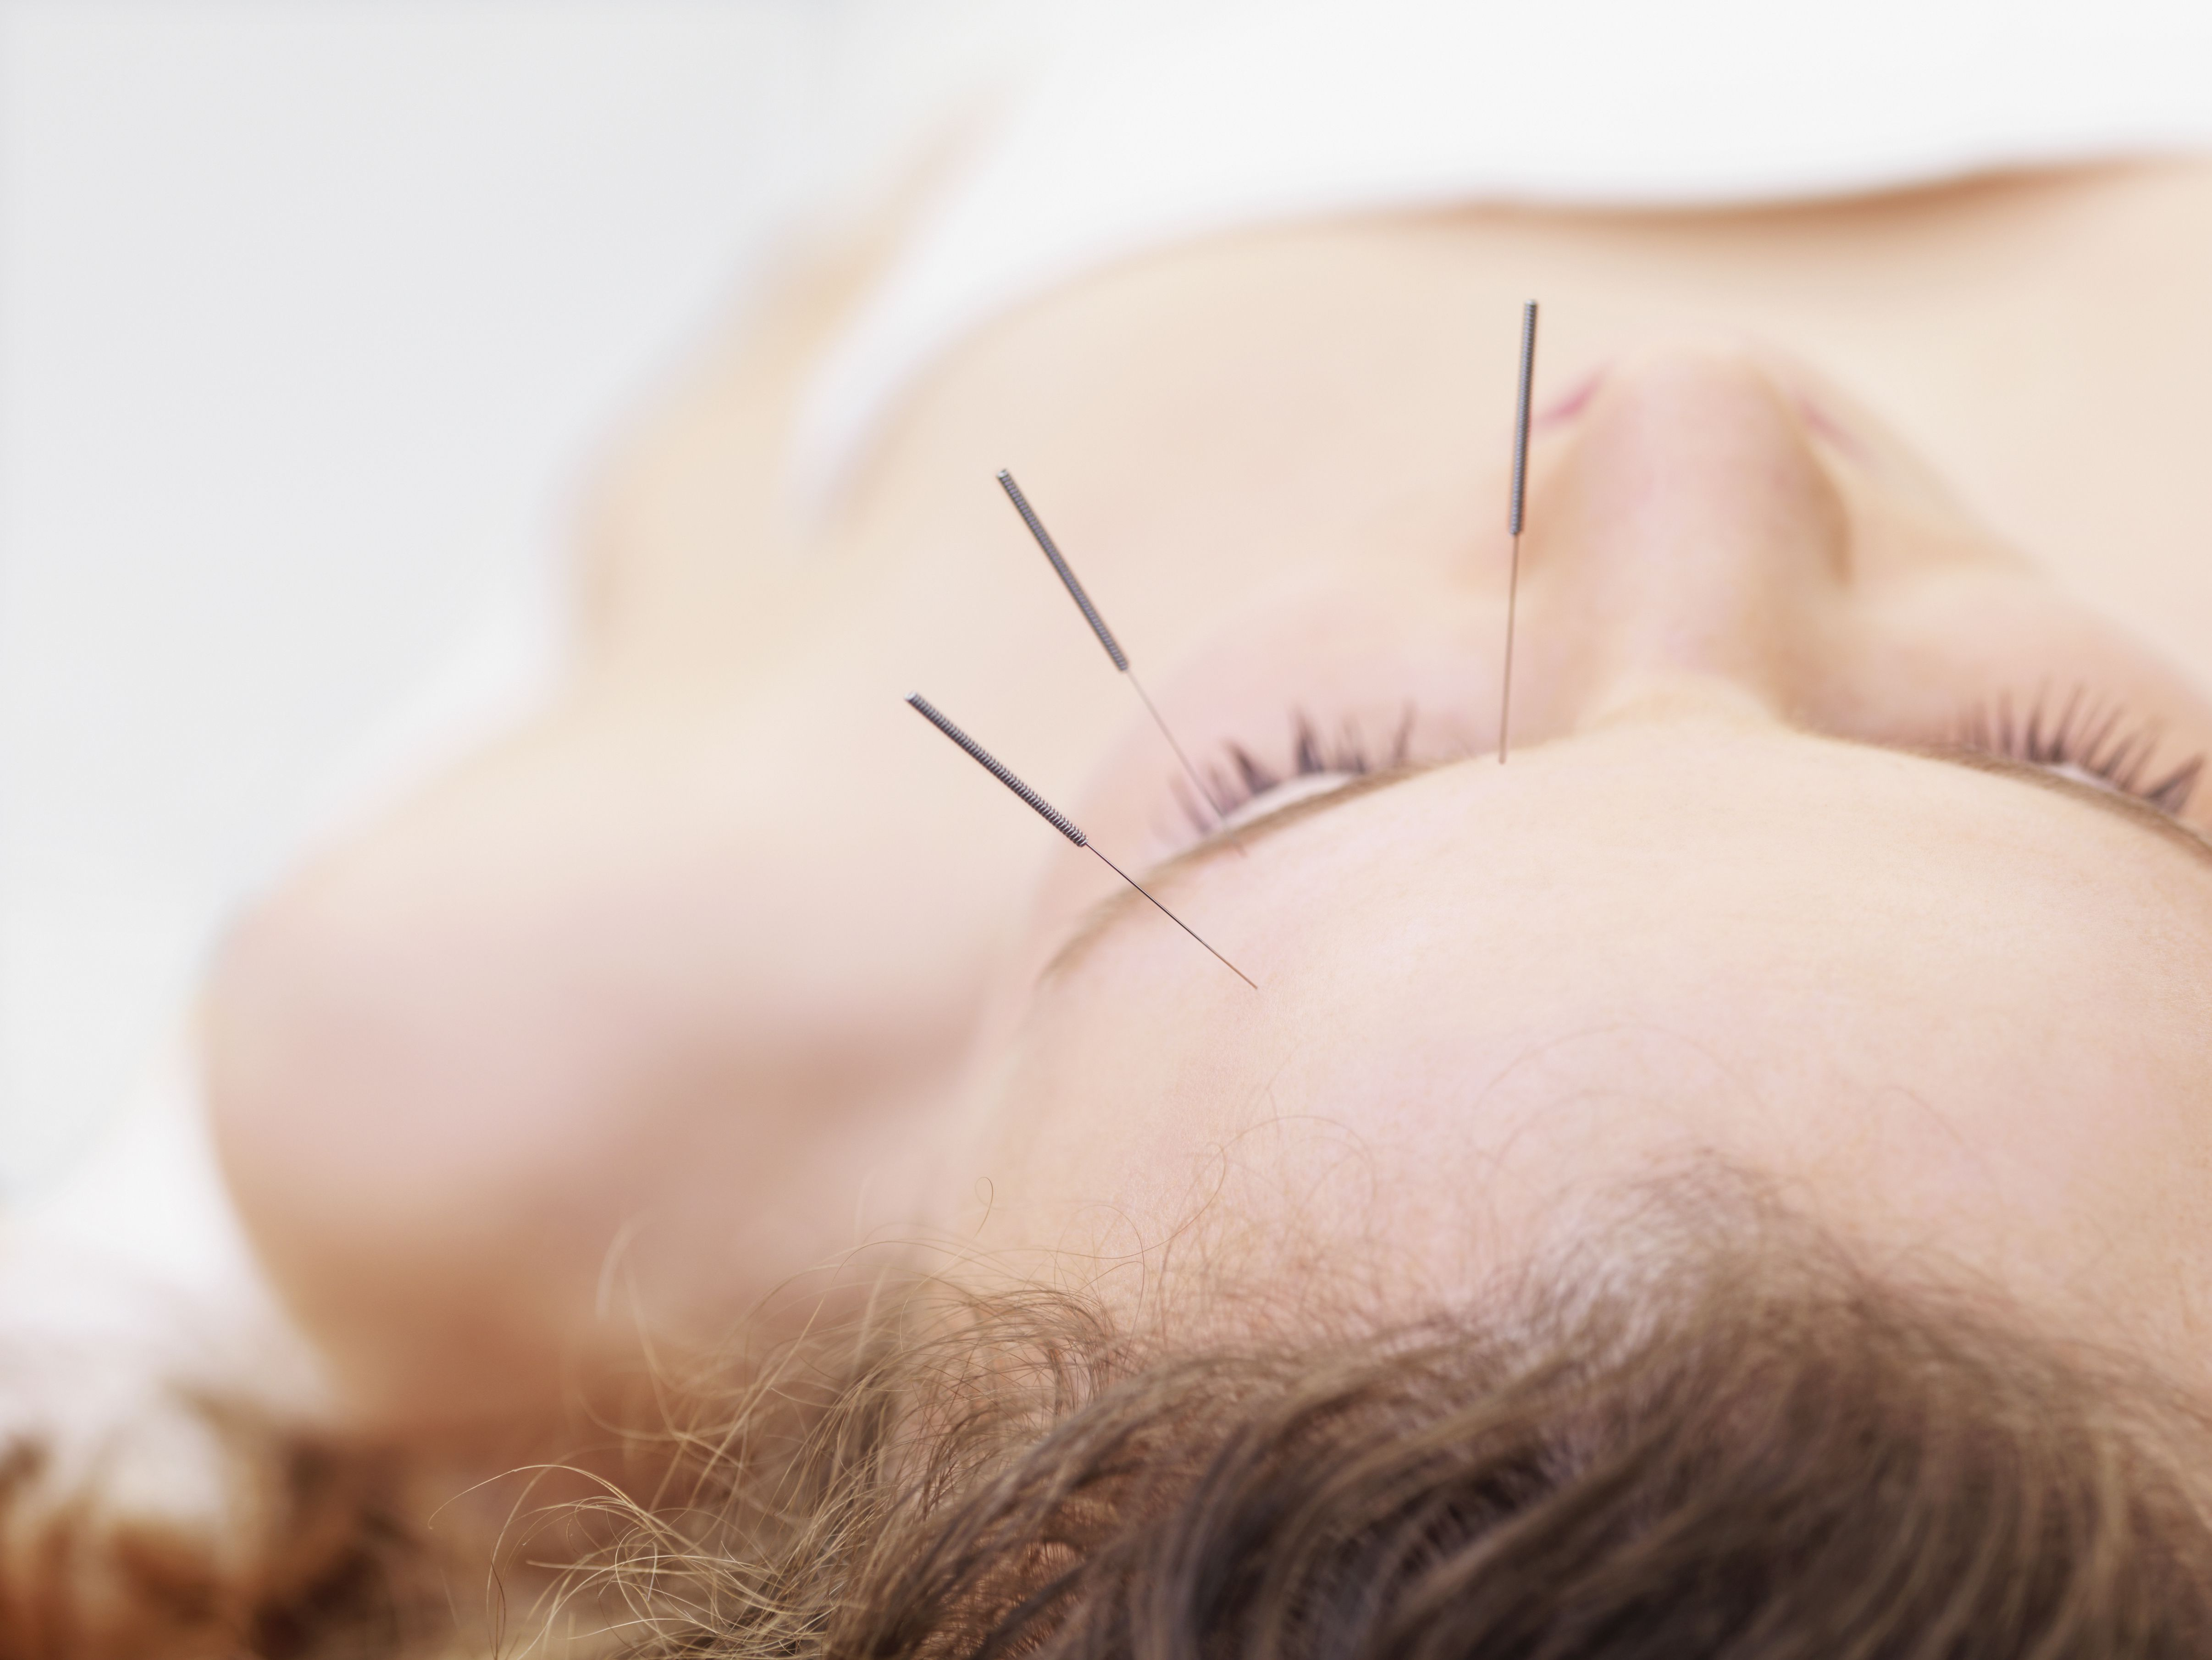 Acupuncture for Asthma Symptoms